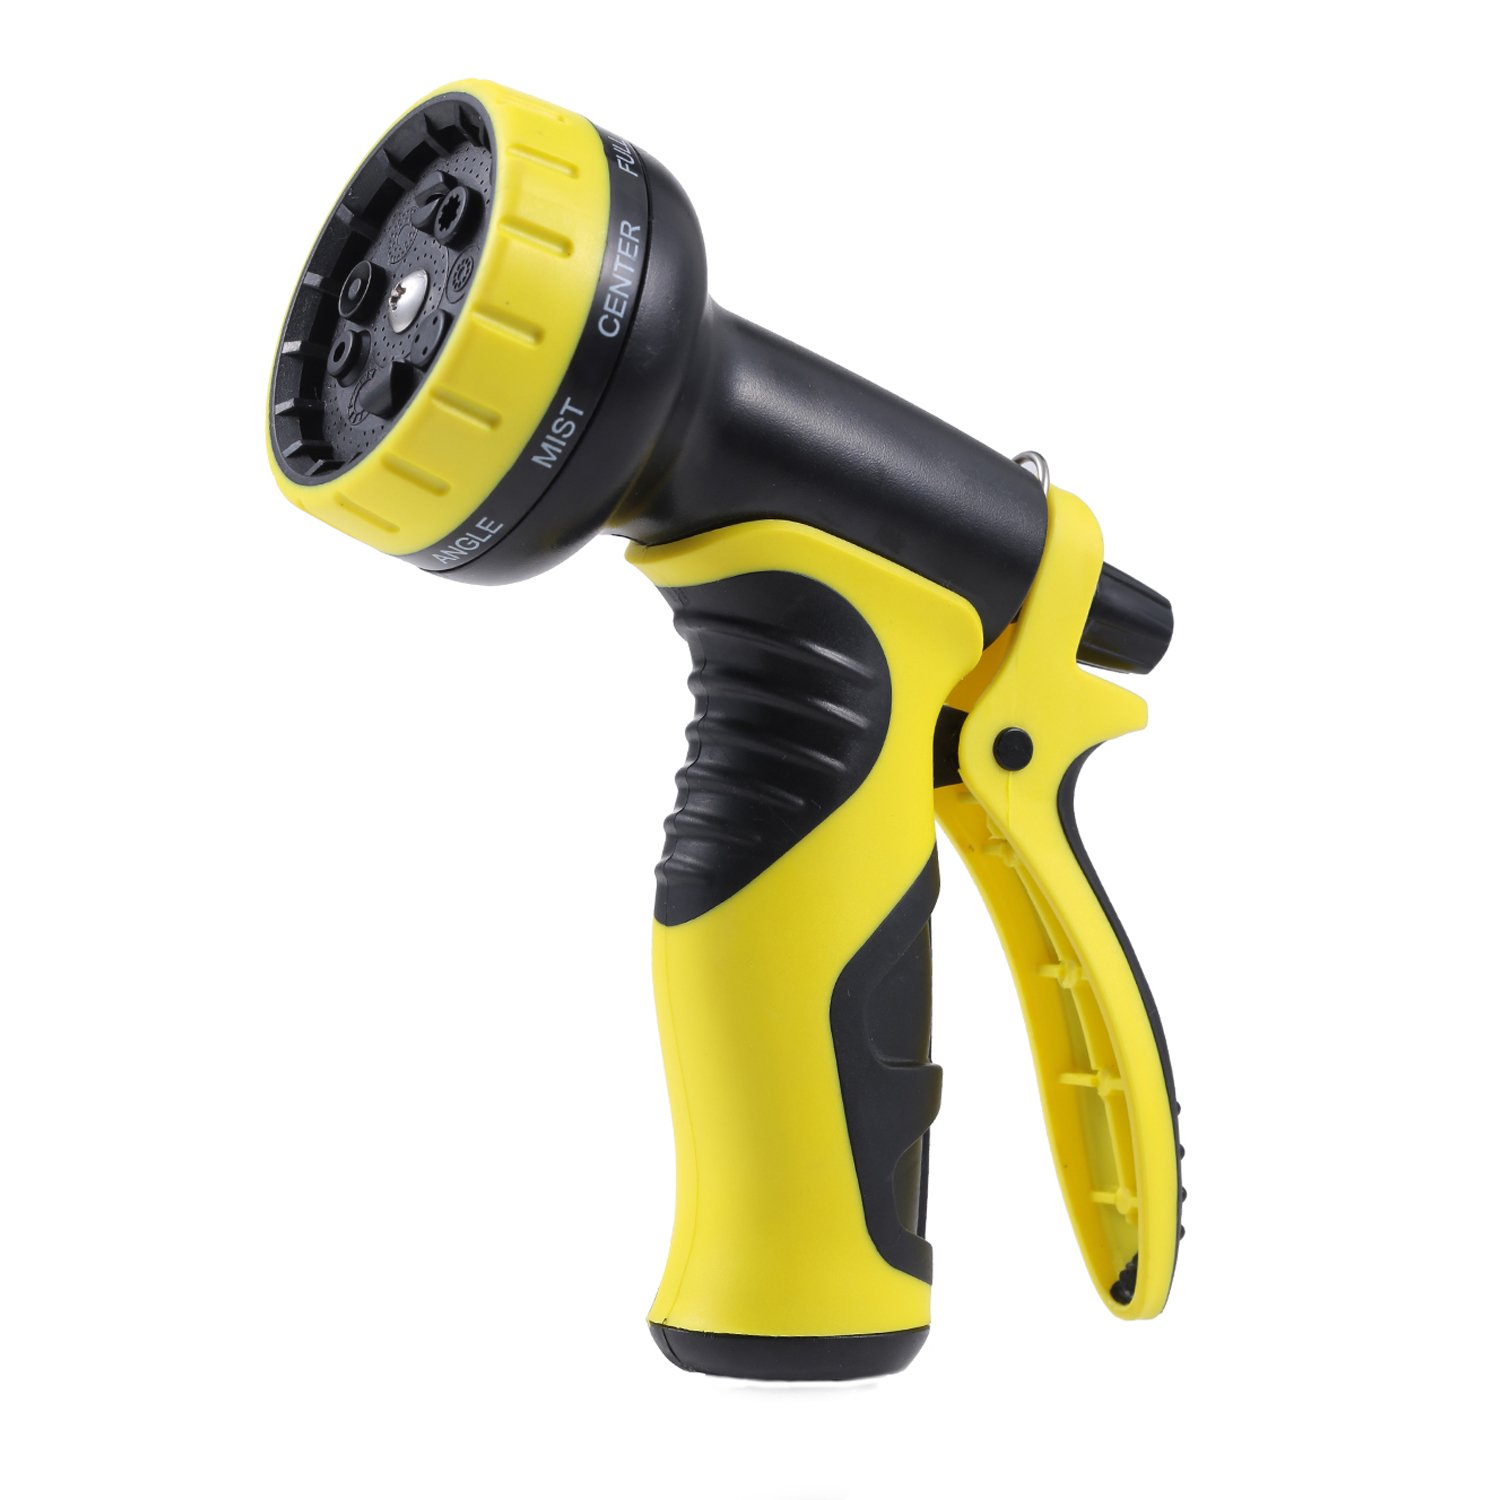 5 Best Hose Nozzles Available In 2018 For Pressure Car Wash And Gardens The Ultimate Buyers